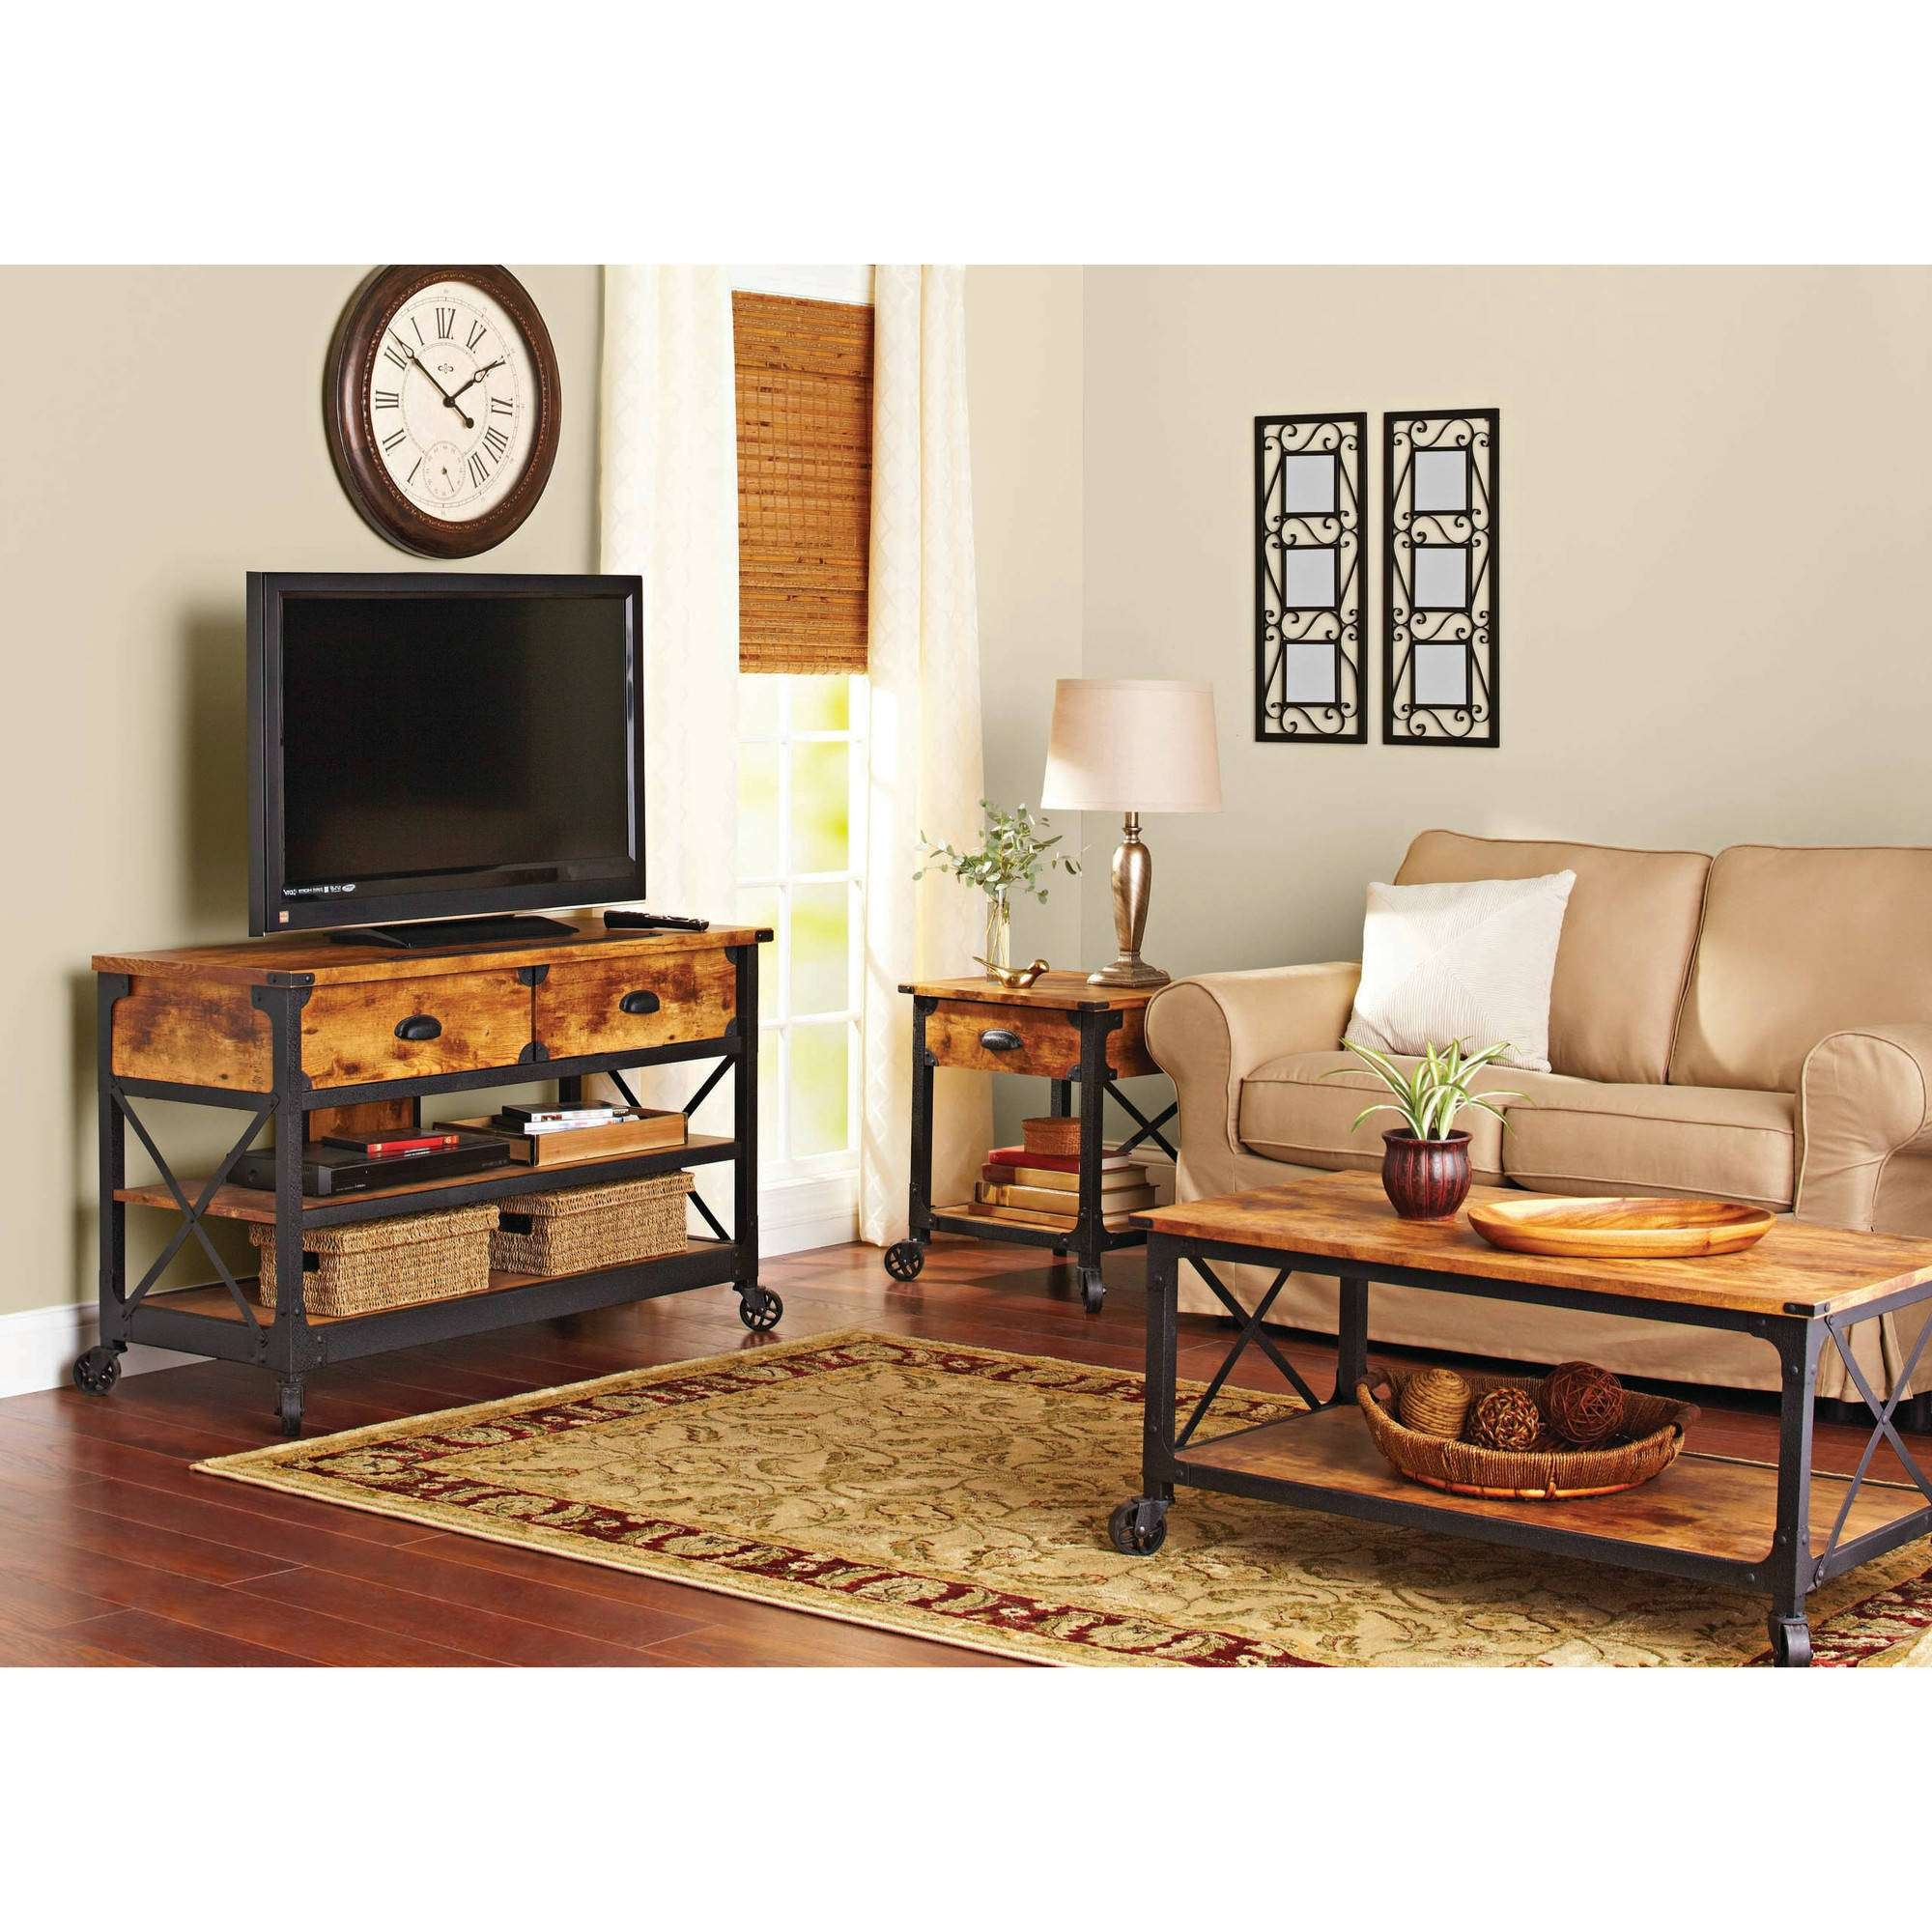 Coffee Table : Coffee Table Tv Stand And Set Cheap Sets End Within Tv Stands Coffee Table Sets (View 4 of 15)